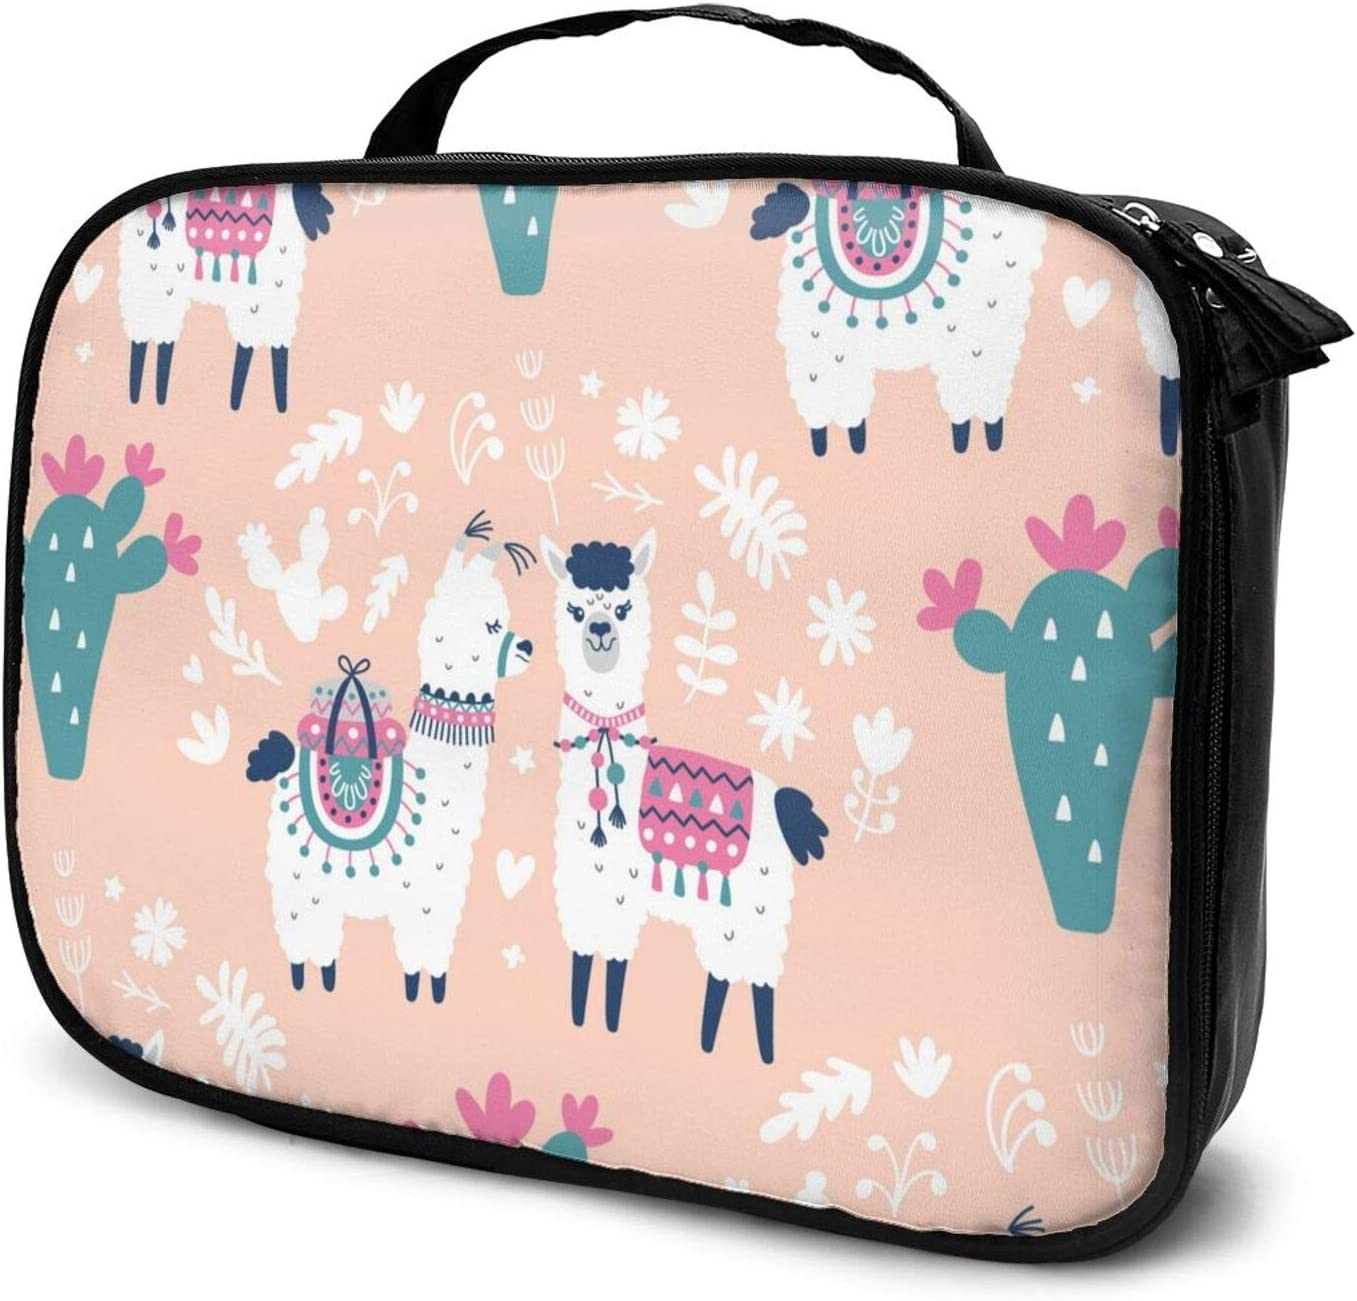 Lovely Alpaca Travel Makeup Train Orga Overseas OFFicial store parallel import regular item Cosmetic Case